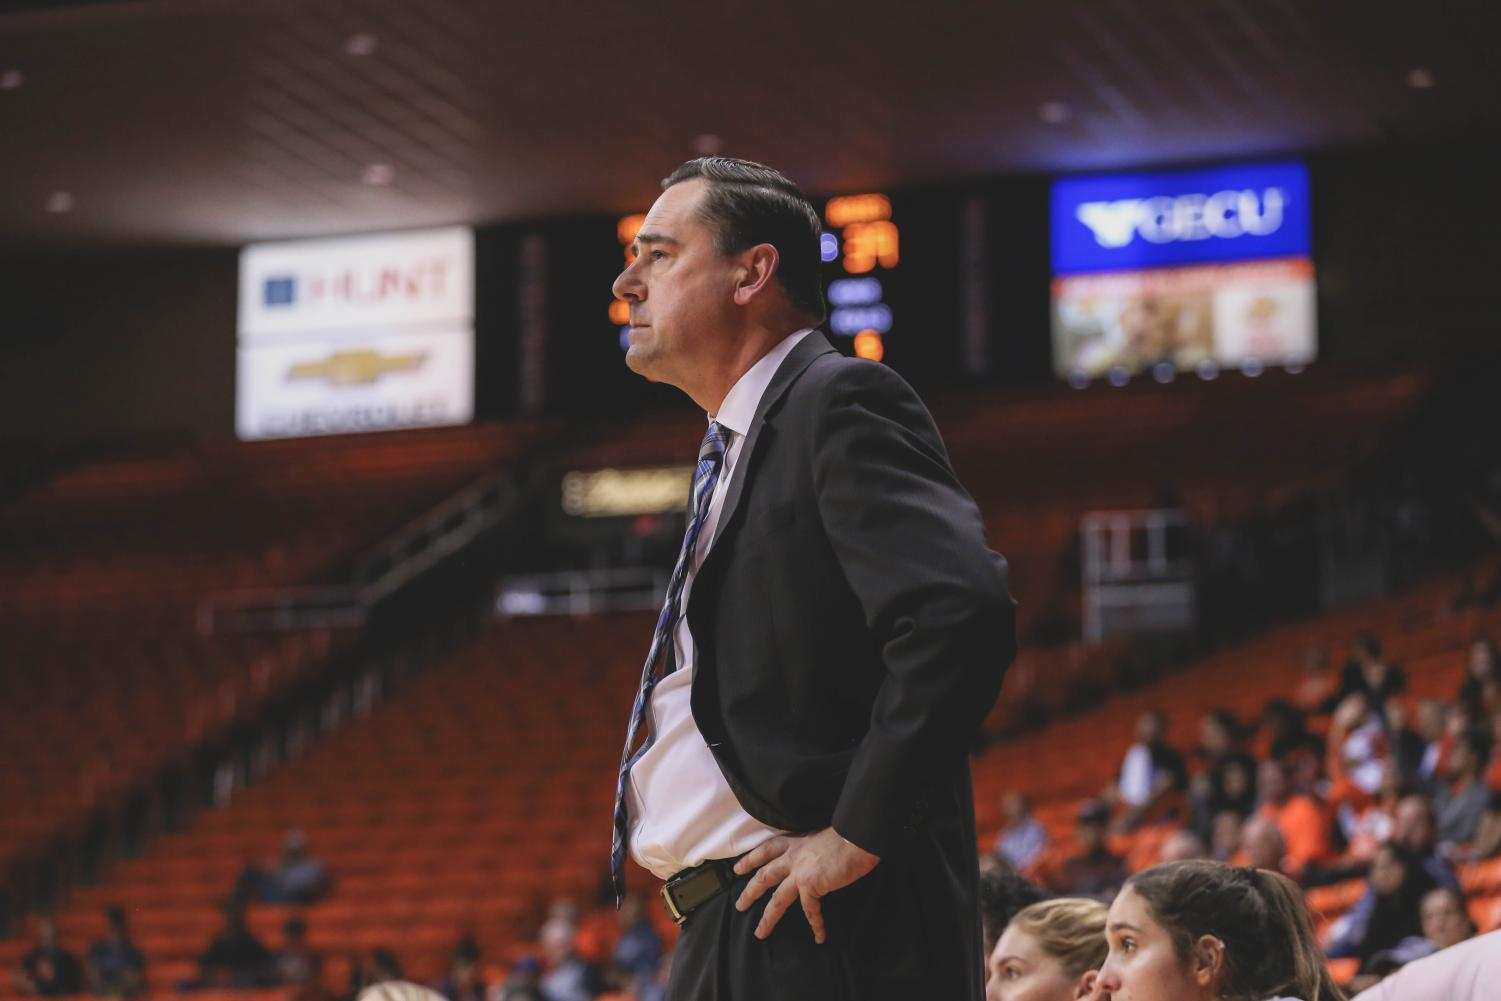 Head+Coach+Kevin+Baker+displayed+his+frustration+as+the+Miners+lost+to+NMSU+in+the+Battle+of+I-10.+